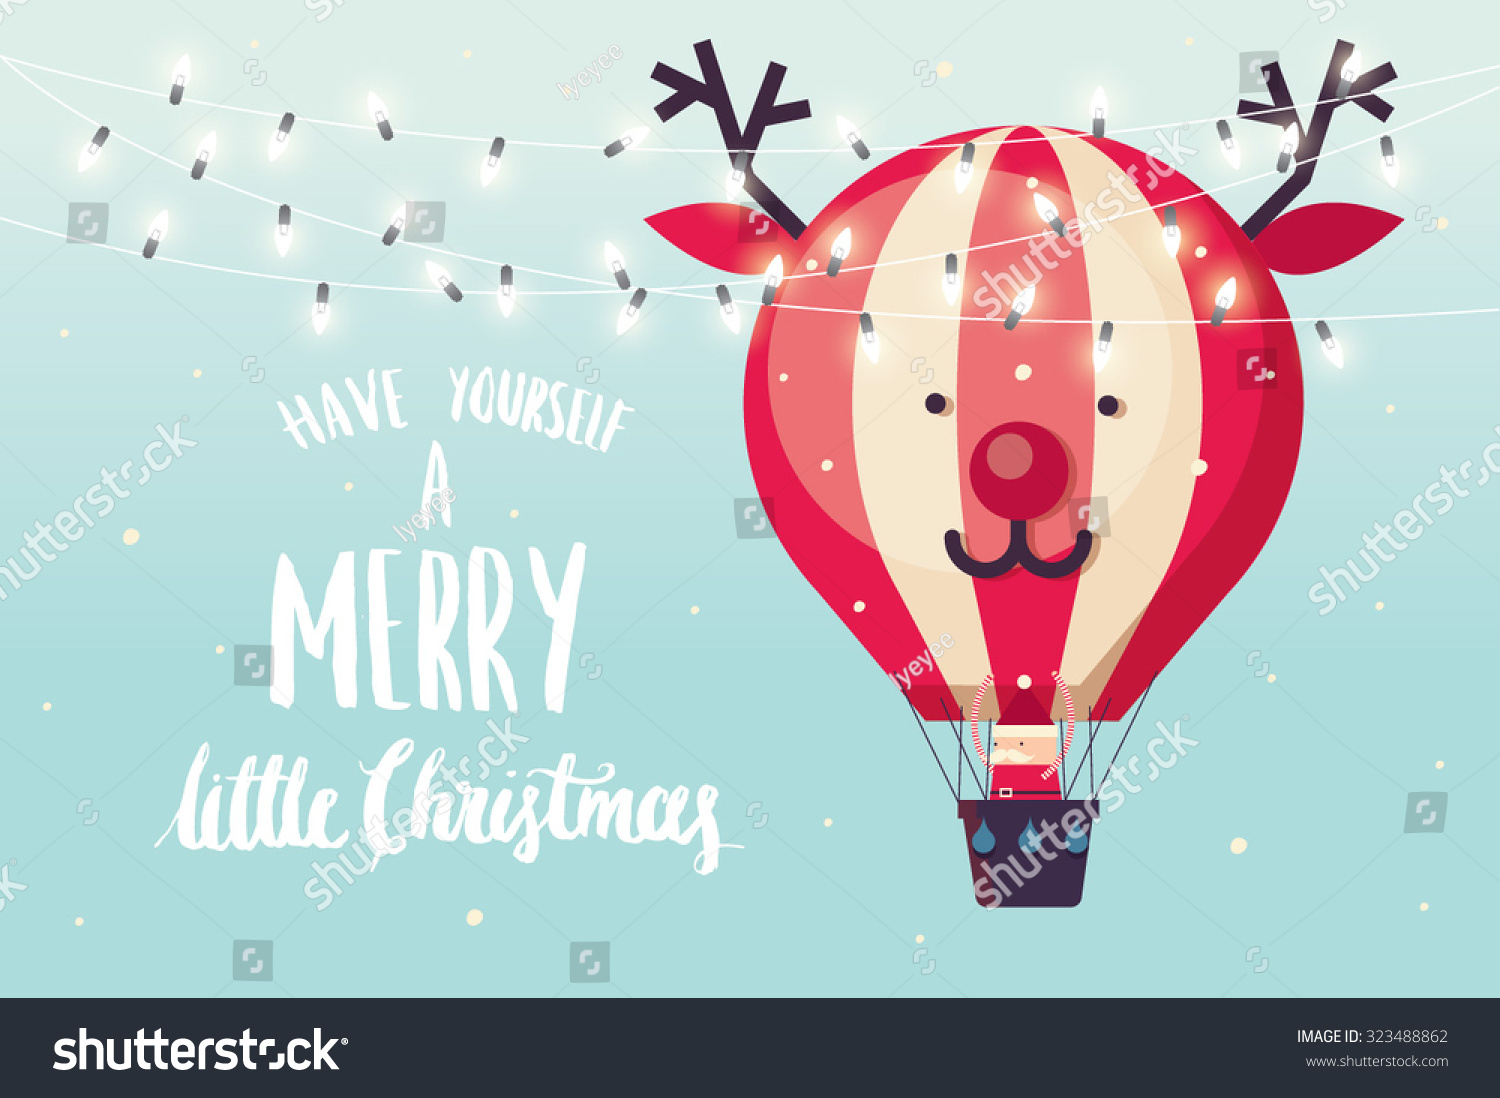 Reindeer hot air balloon christmas greeting stock vector royalty reindeer hot air balloon christmas greeting template vectorillustration m4hsunfo